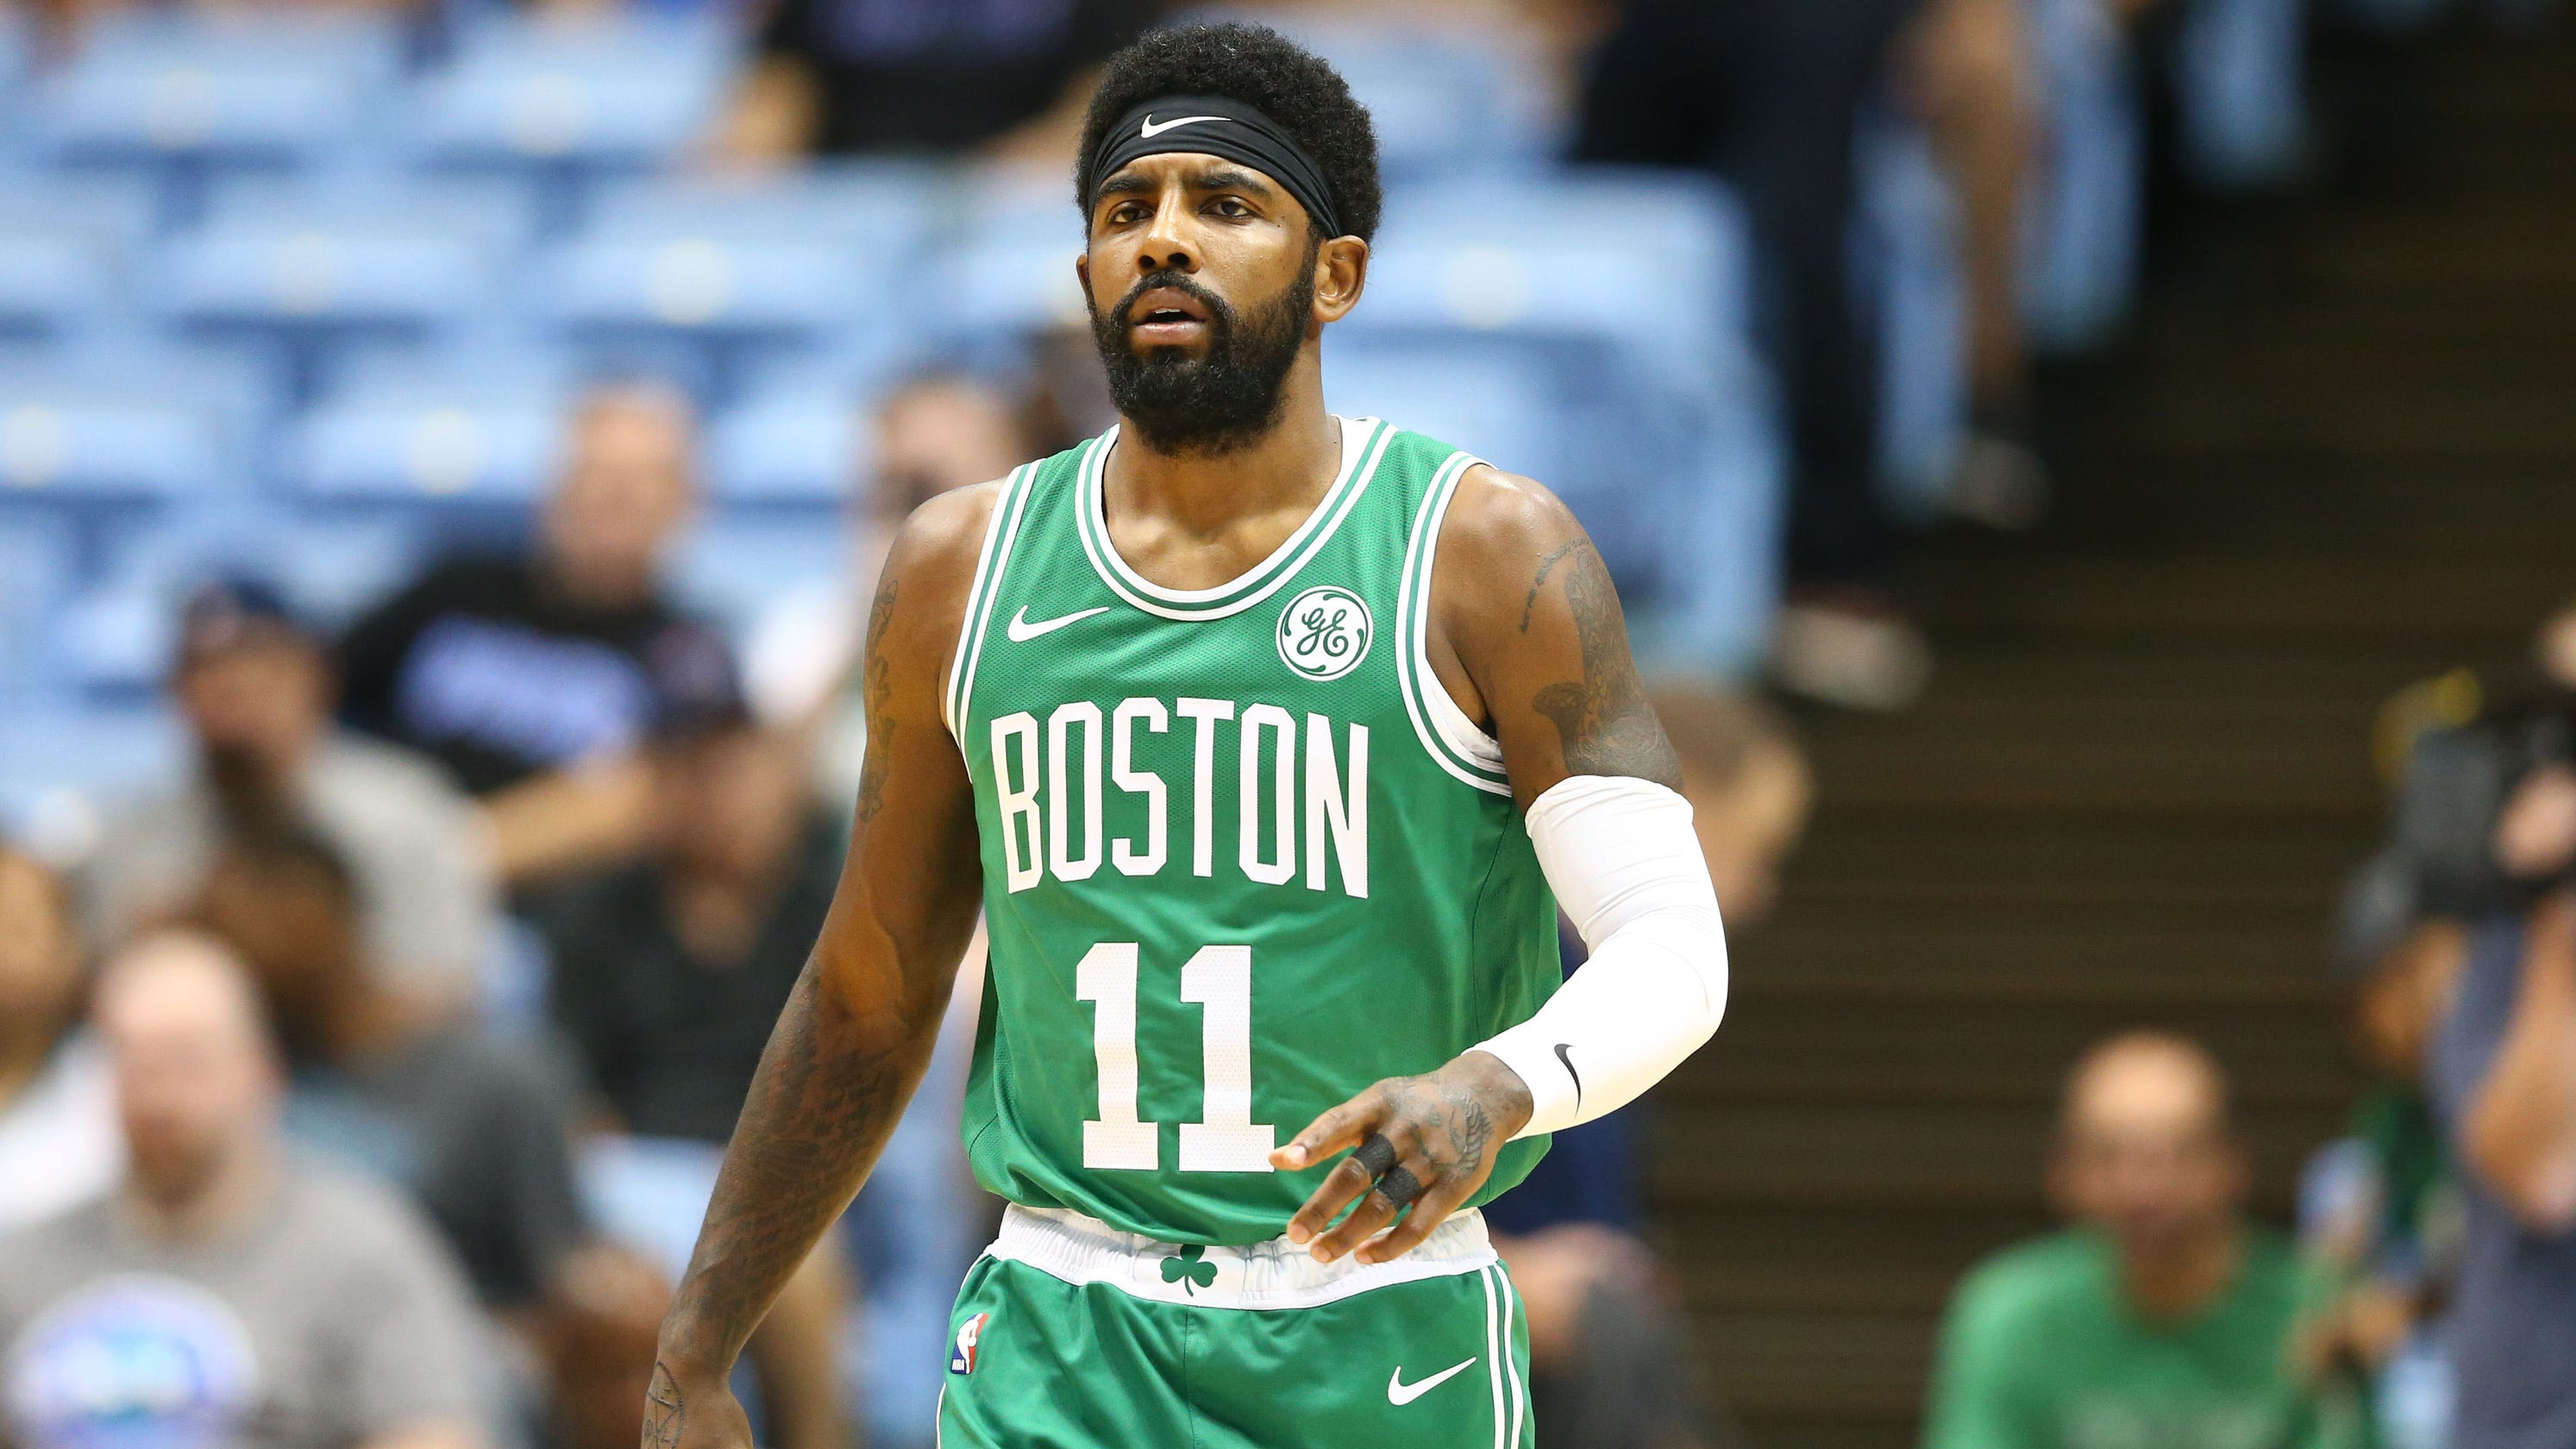 wholesale dealer 35d60 e6b15 New York Knicks: Where they could turn if Kyrie Irving stays ...